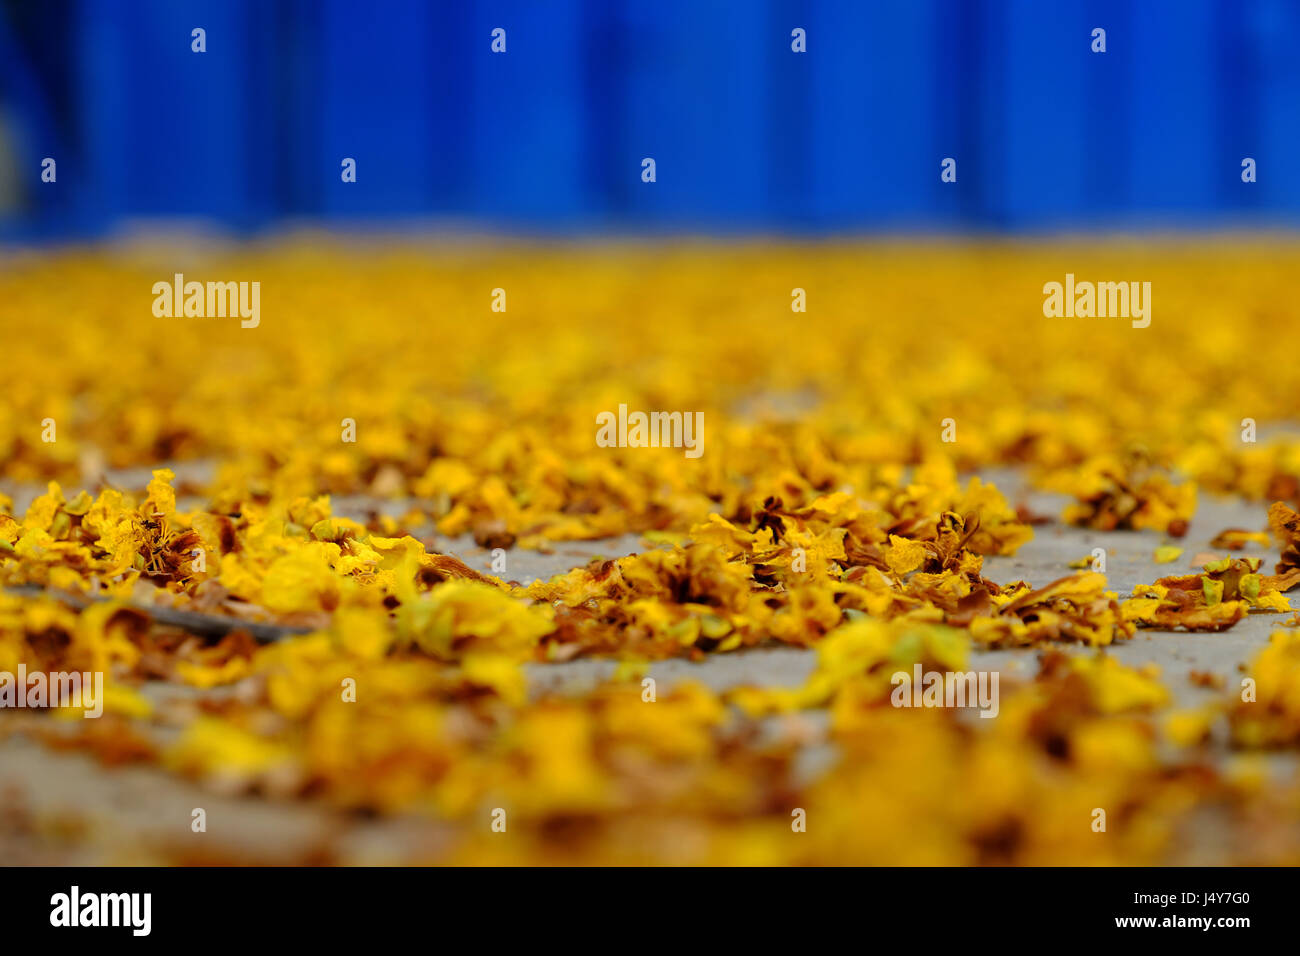 Yellow flower petals on floor fall by faded flowers make beautiful yellow flower petals on floor fall by faded flowers make beautiful background of nature mightylinksfo